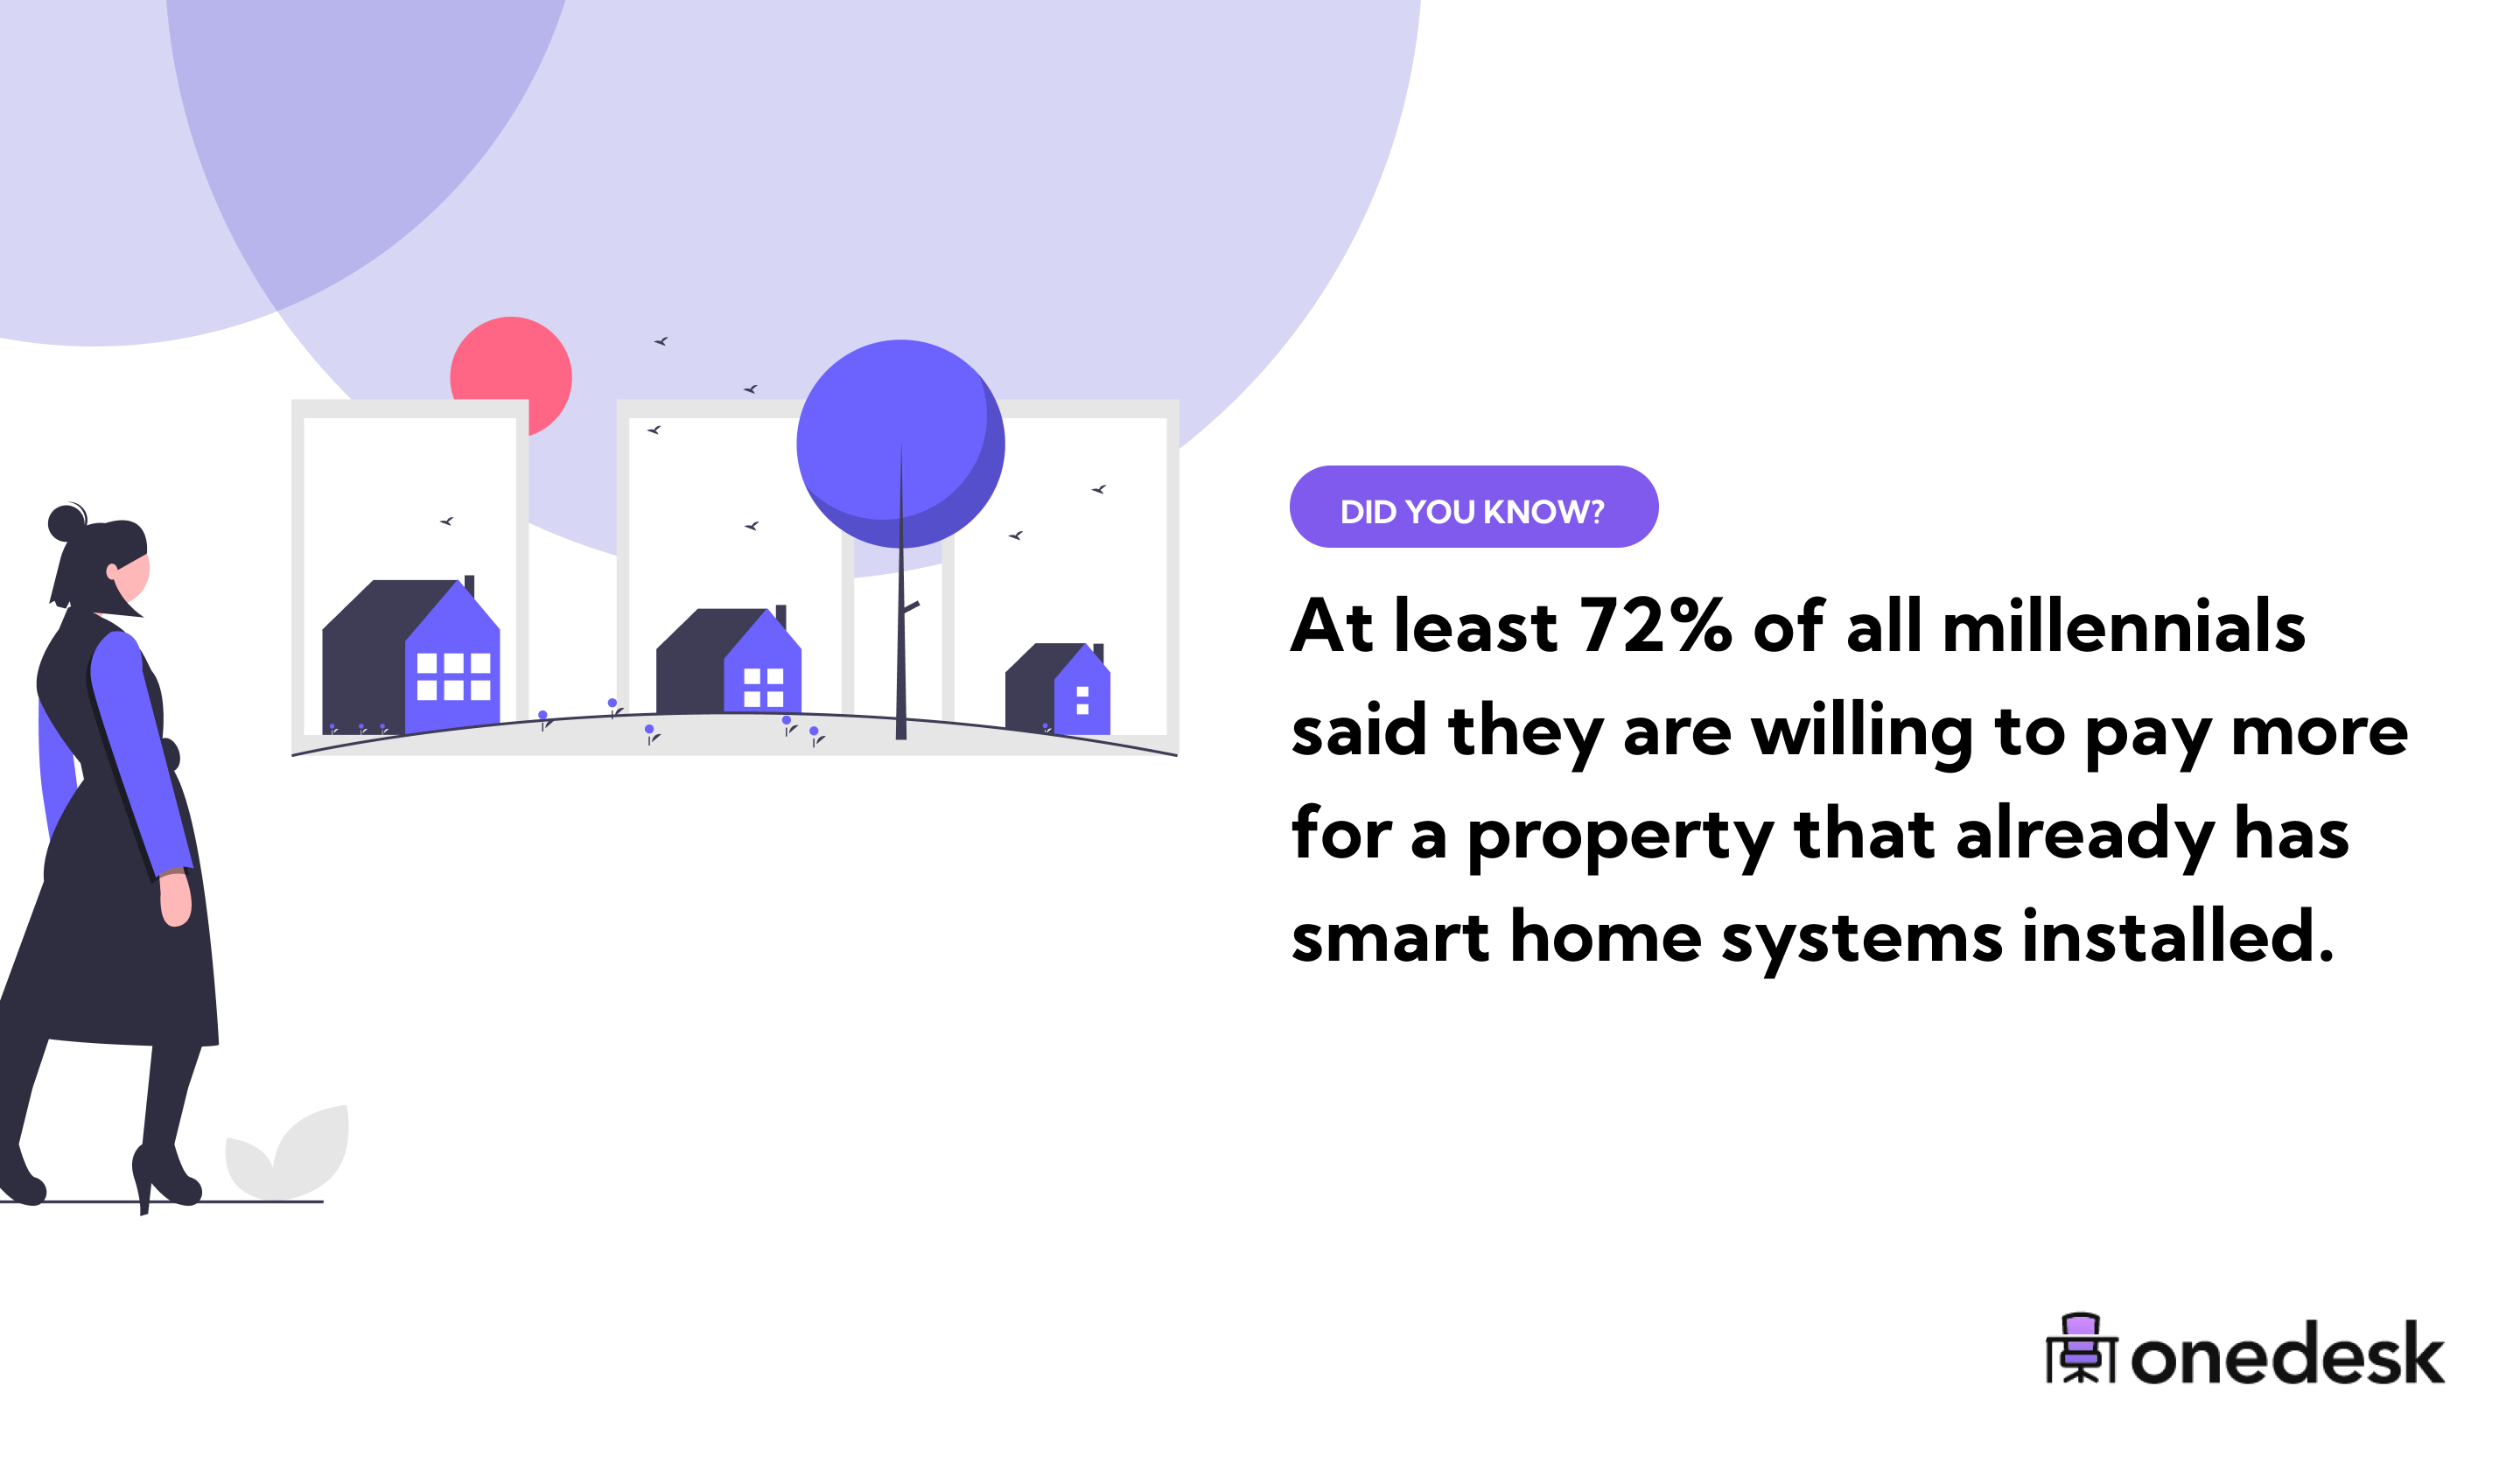 millennials are willing to pay more for smart homes